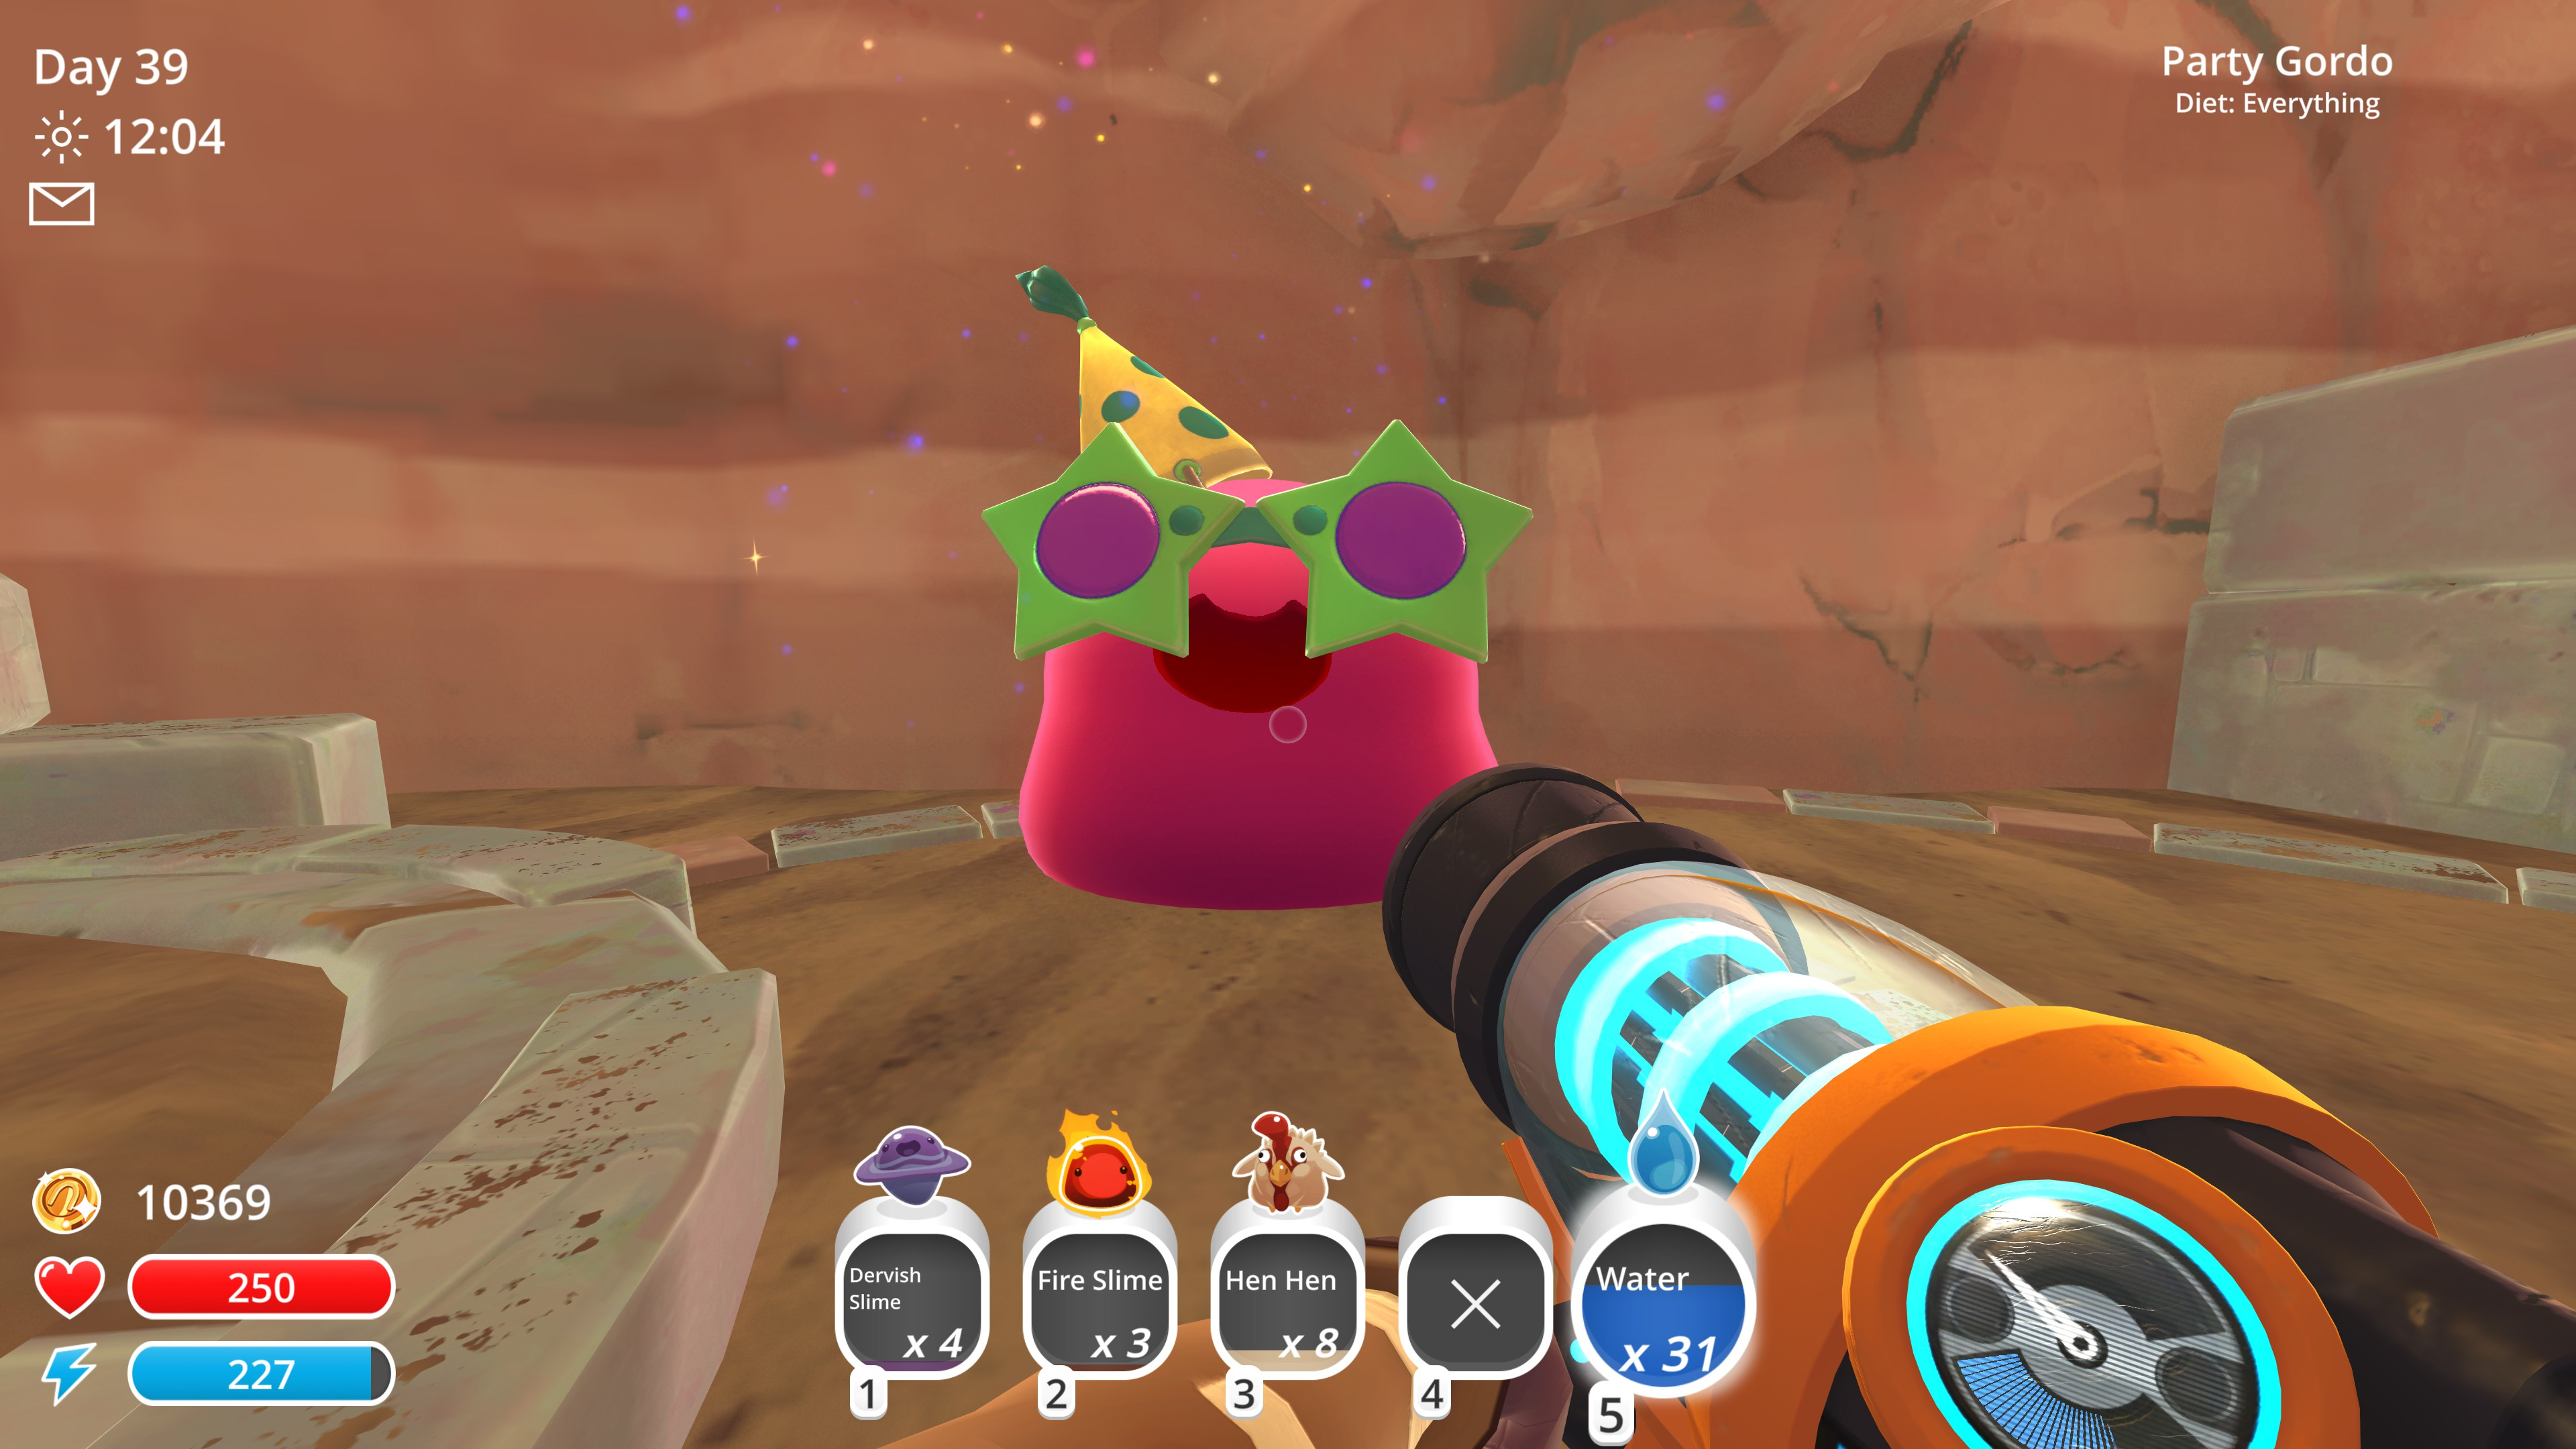 impressively large pink gordo with a party hat and star sunglasses, known as a party gordo